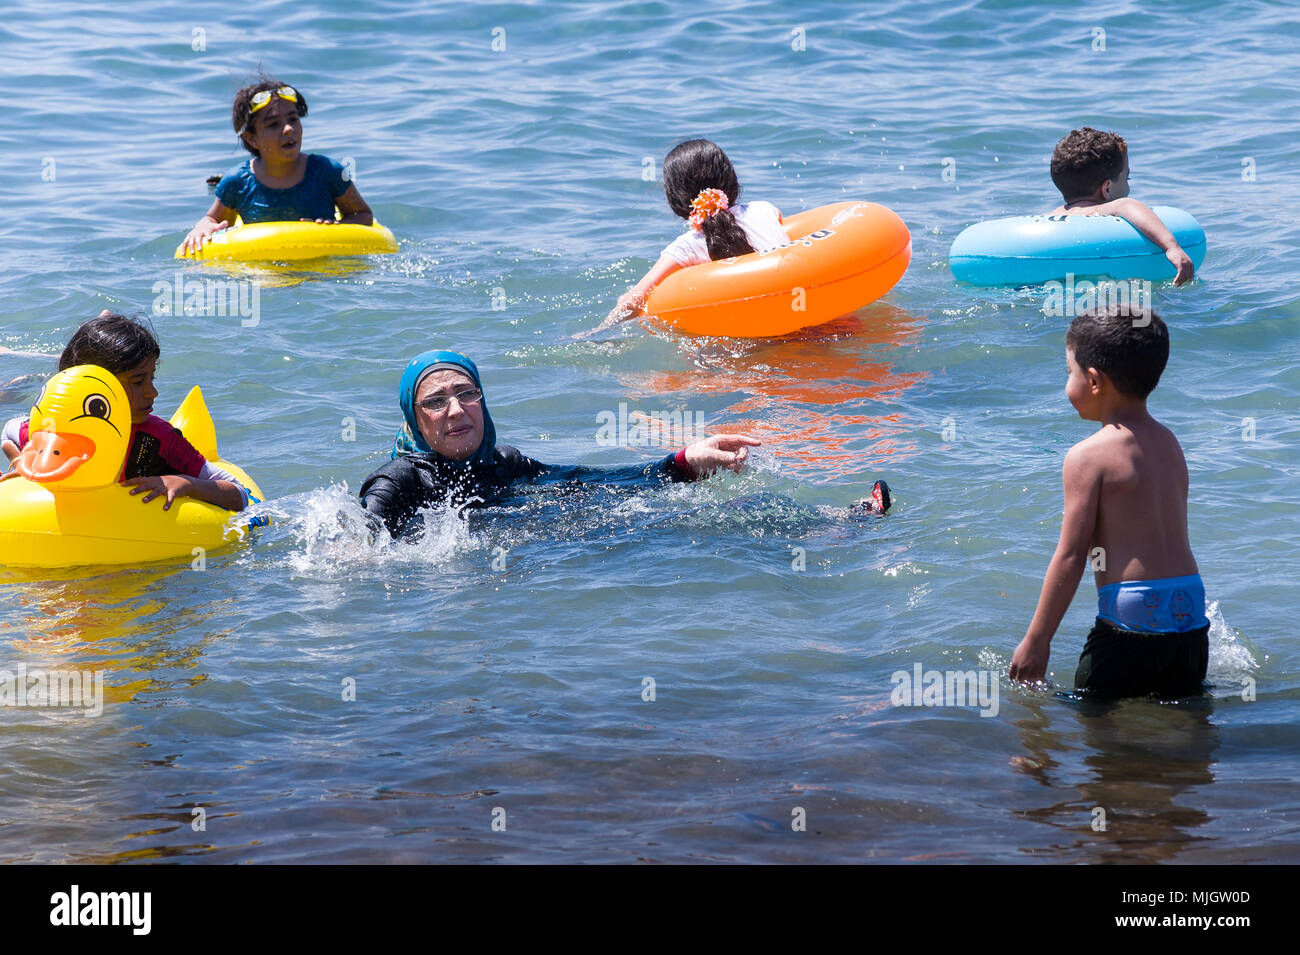 Aqaba is a Jordanian coastal city situated at the northeastern tip of the Red Sea. Aqaba is the largest city on the Gulf of Aqaba and Jordan's only co - Stock Image